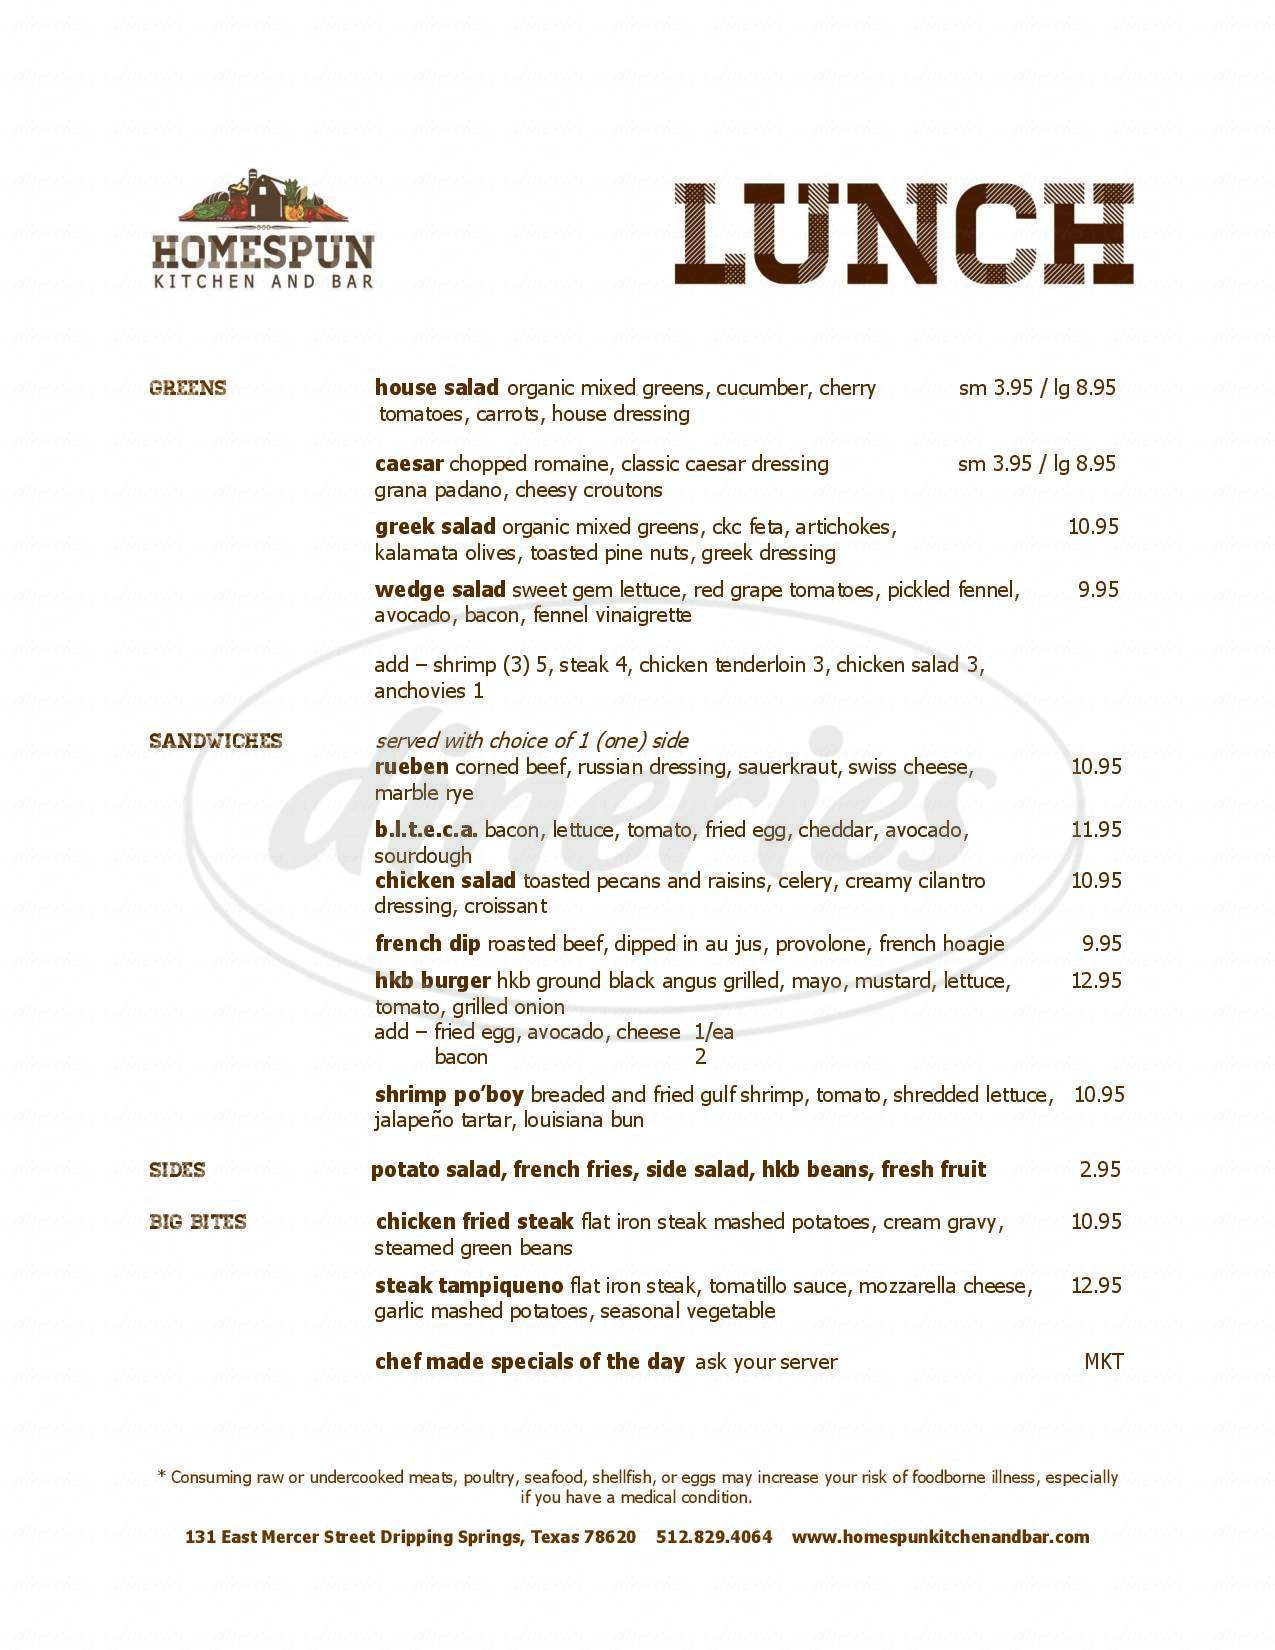 menu for Homespun Kitchen And Bar